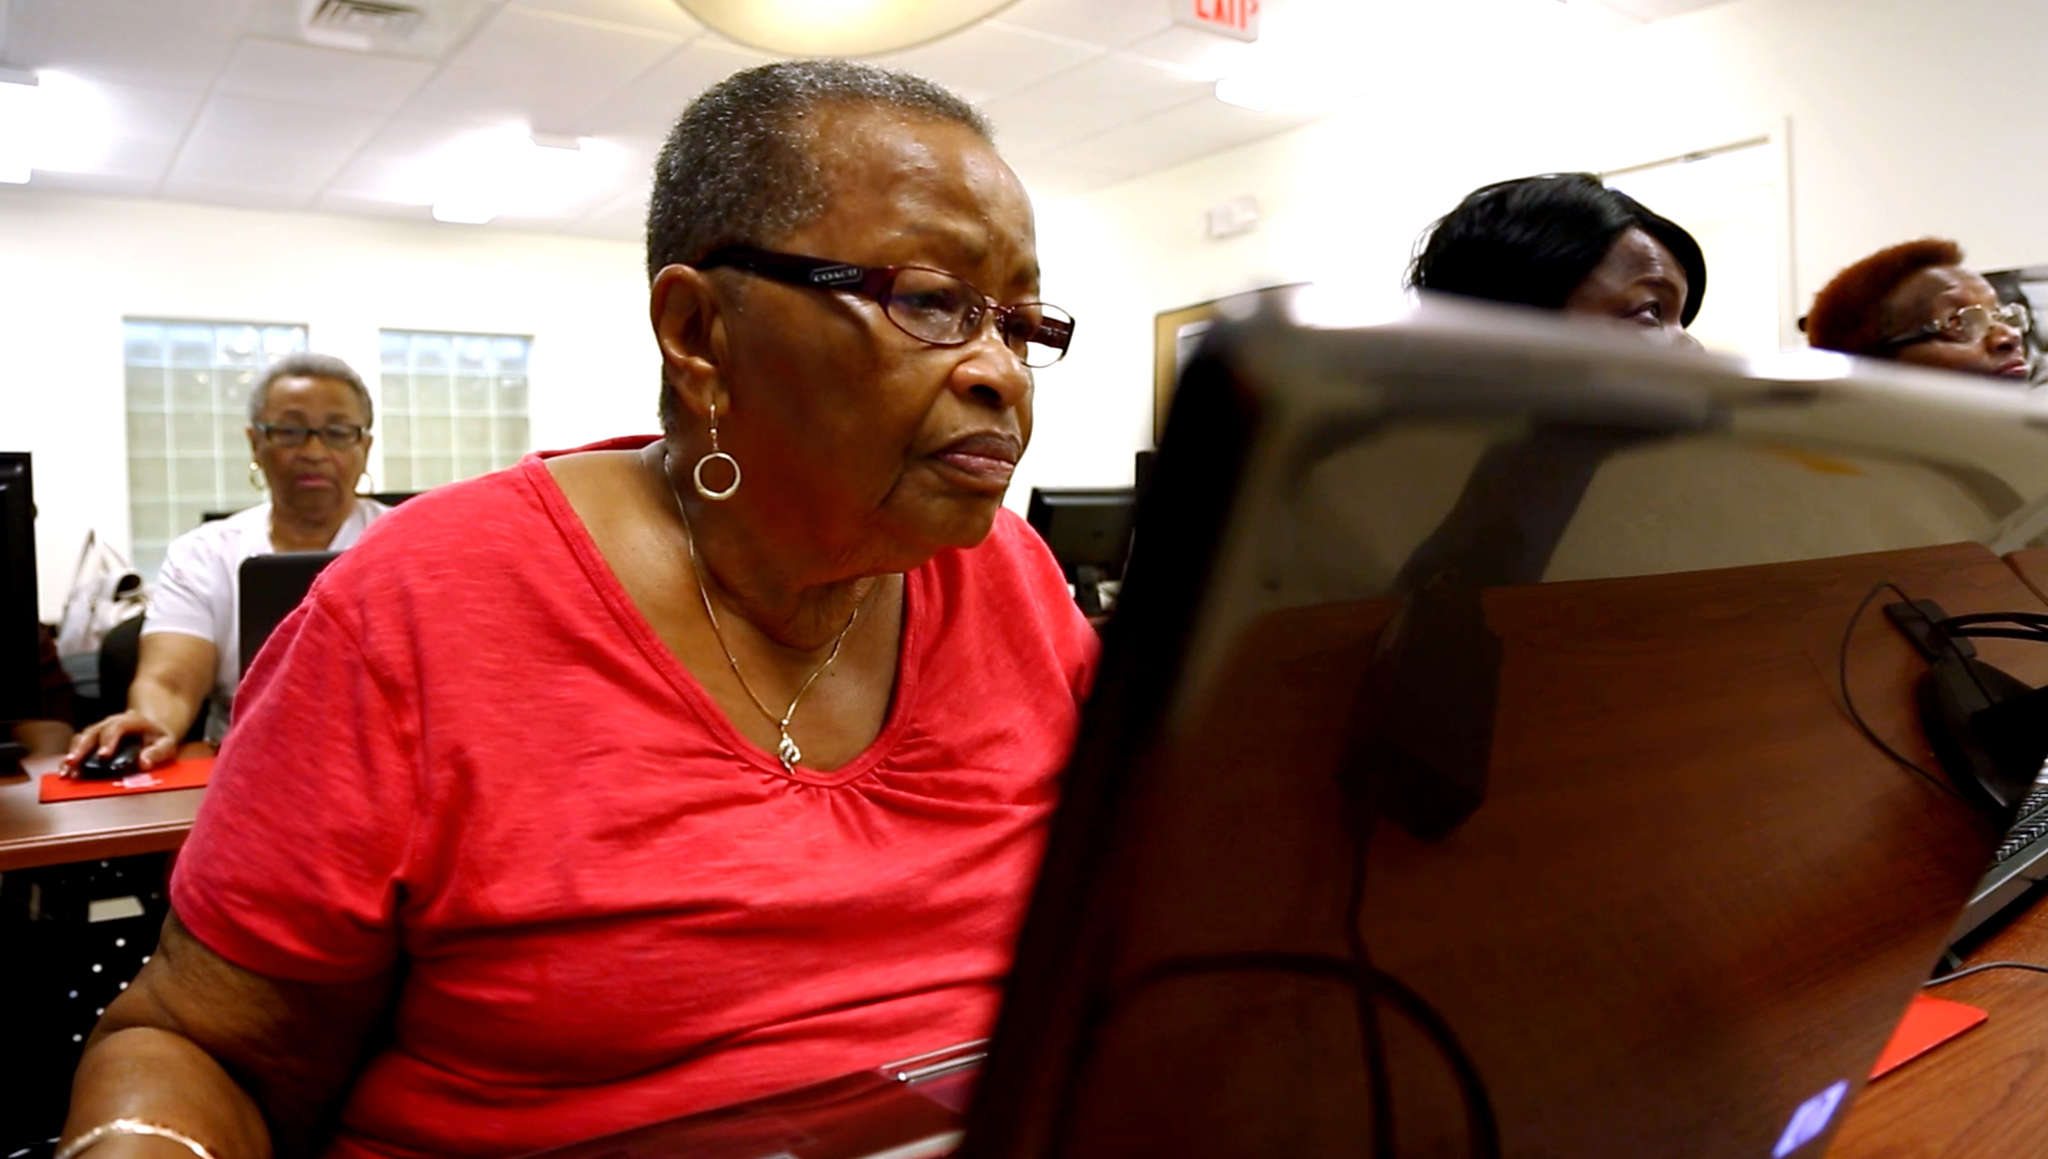 Comcast will offer the $10-a-month Internet Essentials service to low-income Philadelphians who are at least 62 years old.